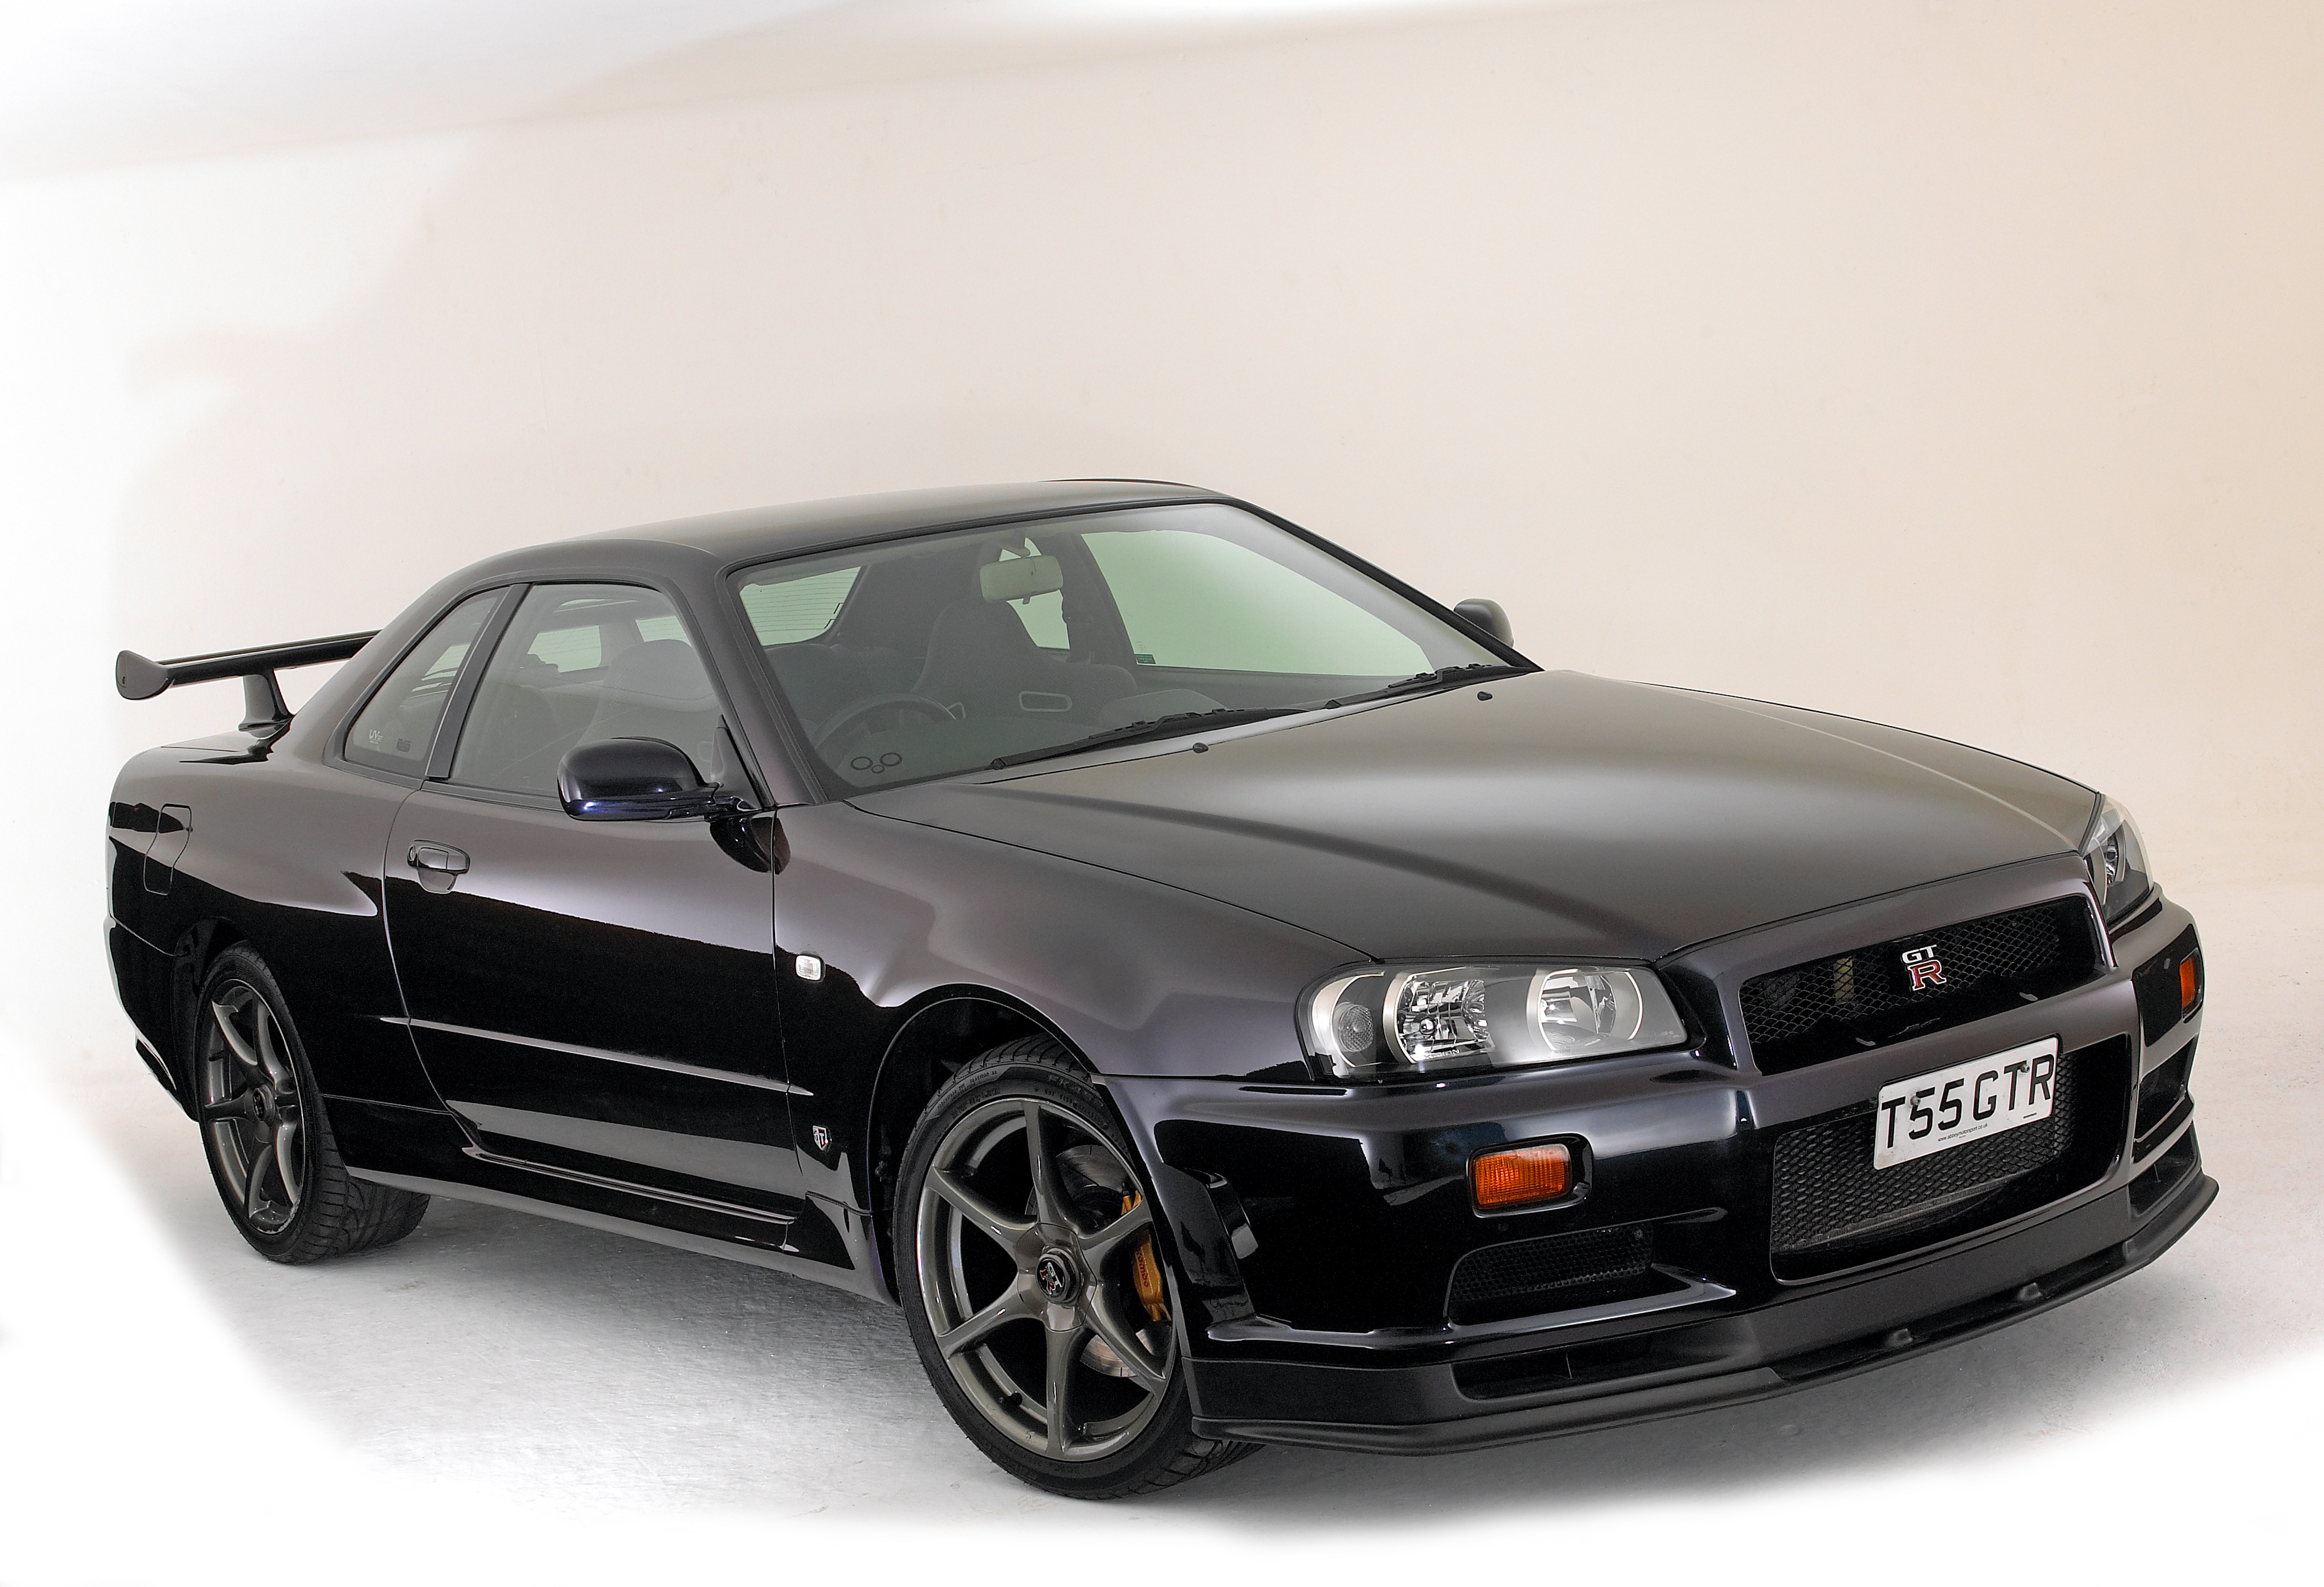 nissan skyline and gt r tuning shop in the uk burns down. Black Bedroom Furniture Sets. Home Design Ideas